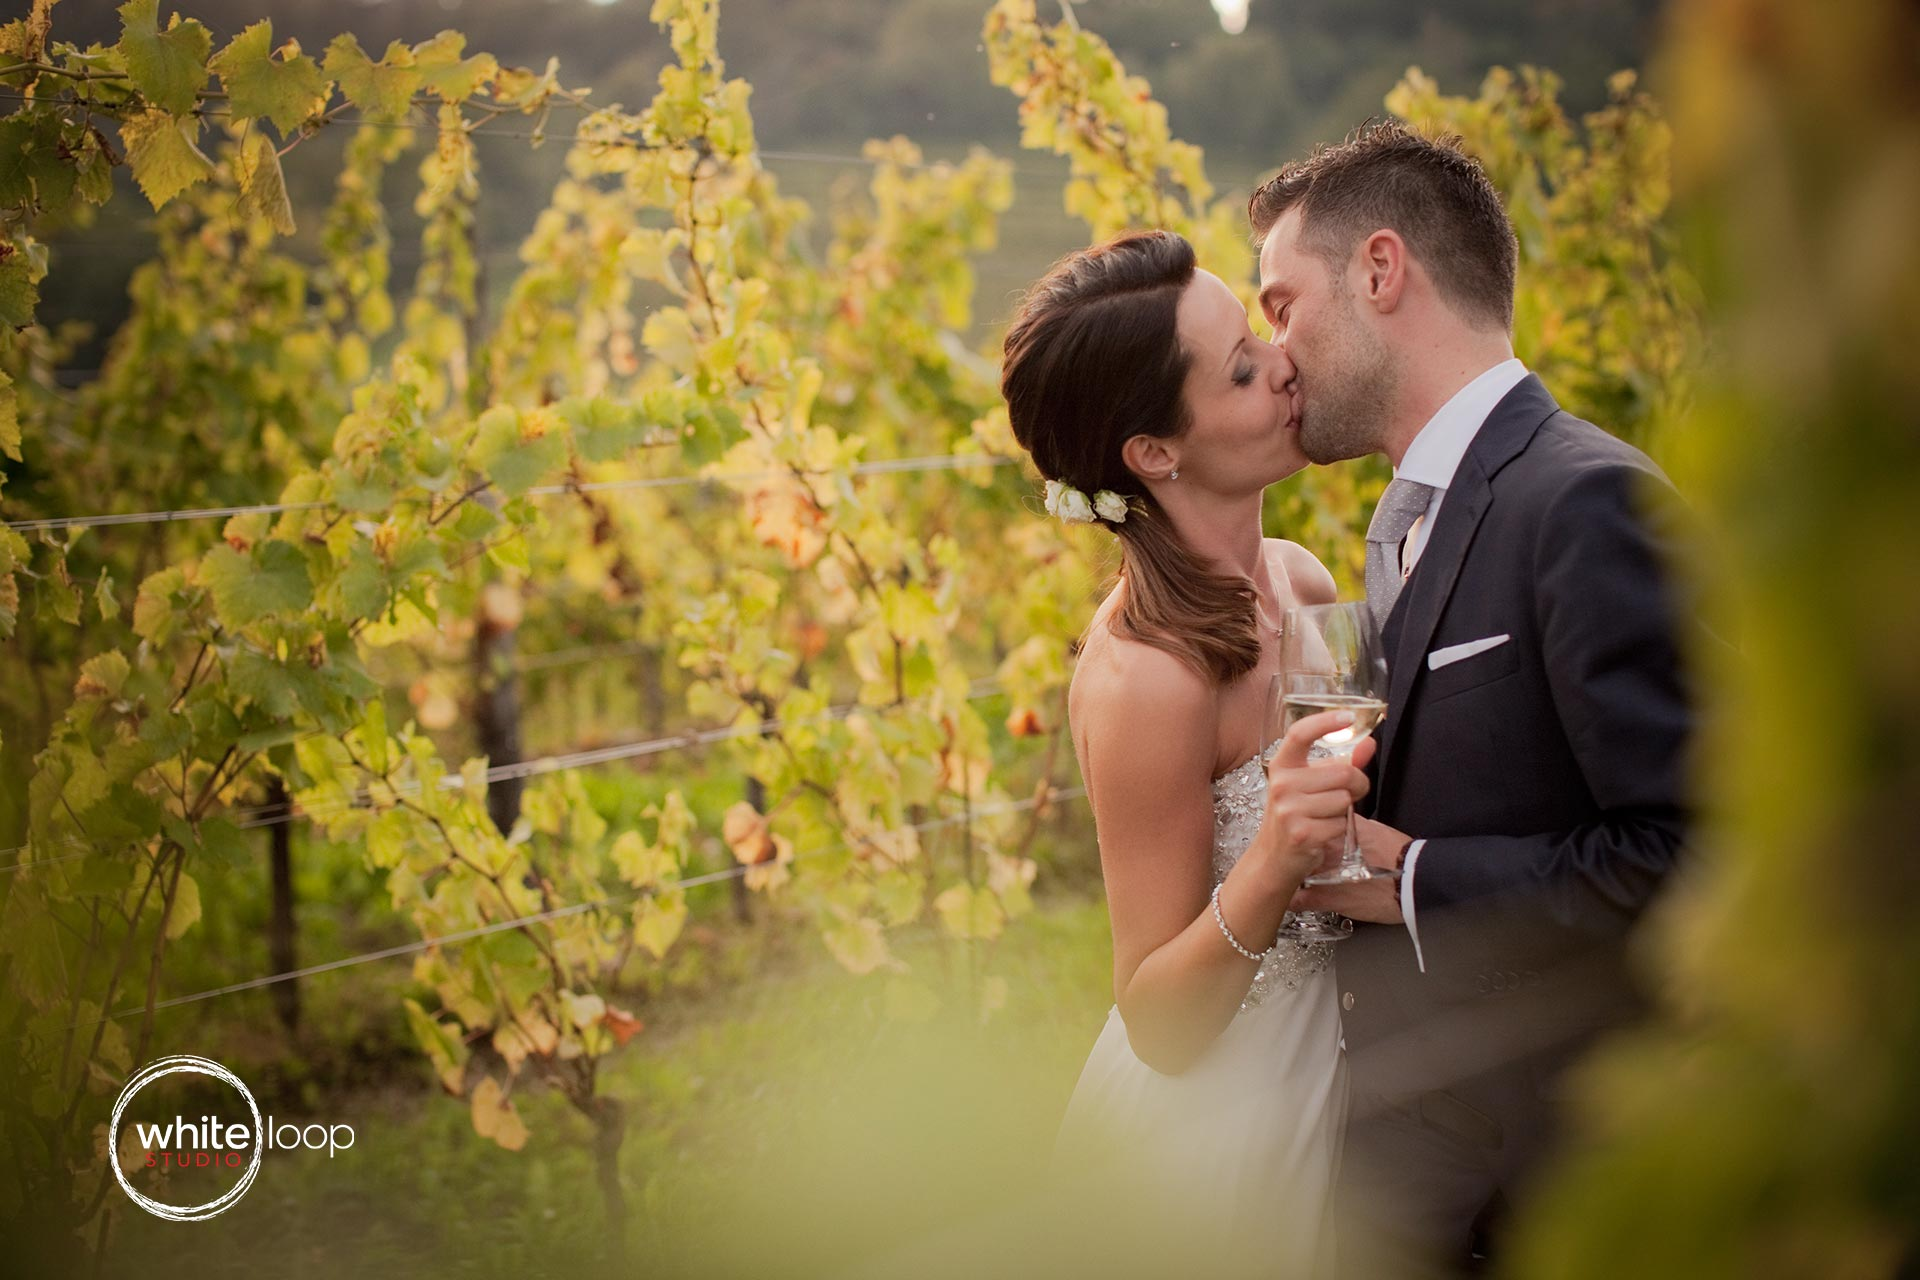 The bride and the groom are kissing through the grapes of a countryside field of Northern Italy.